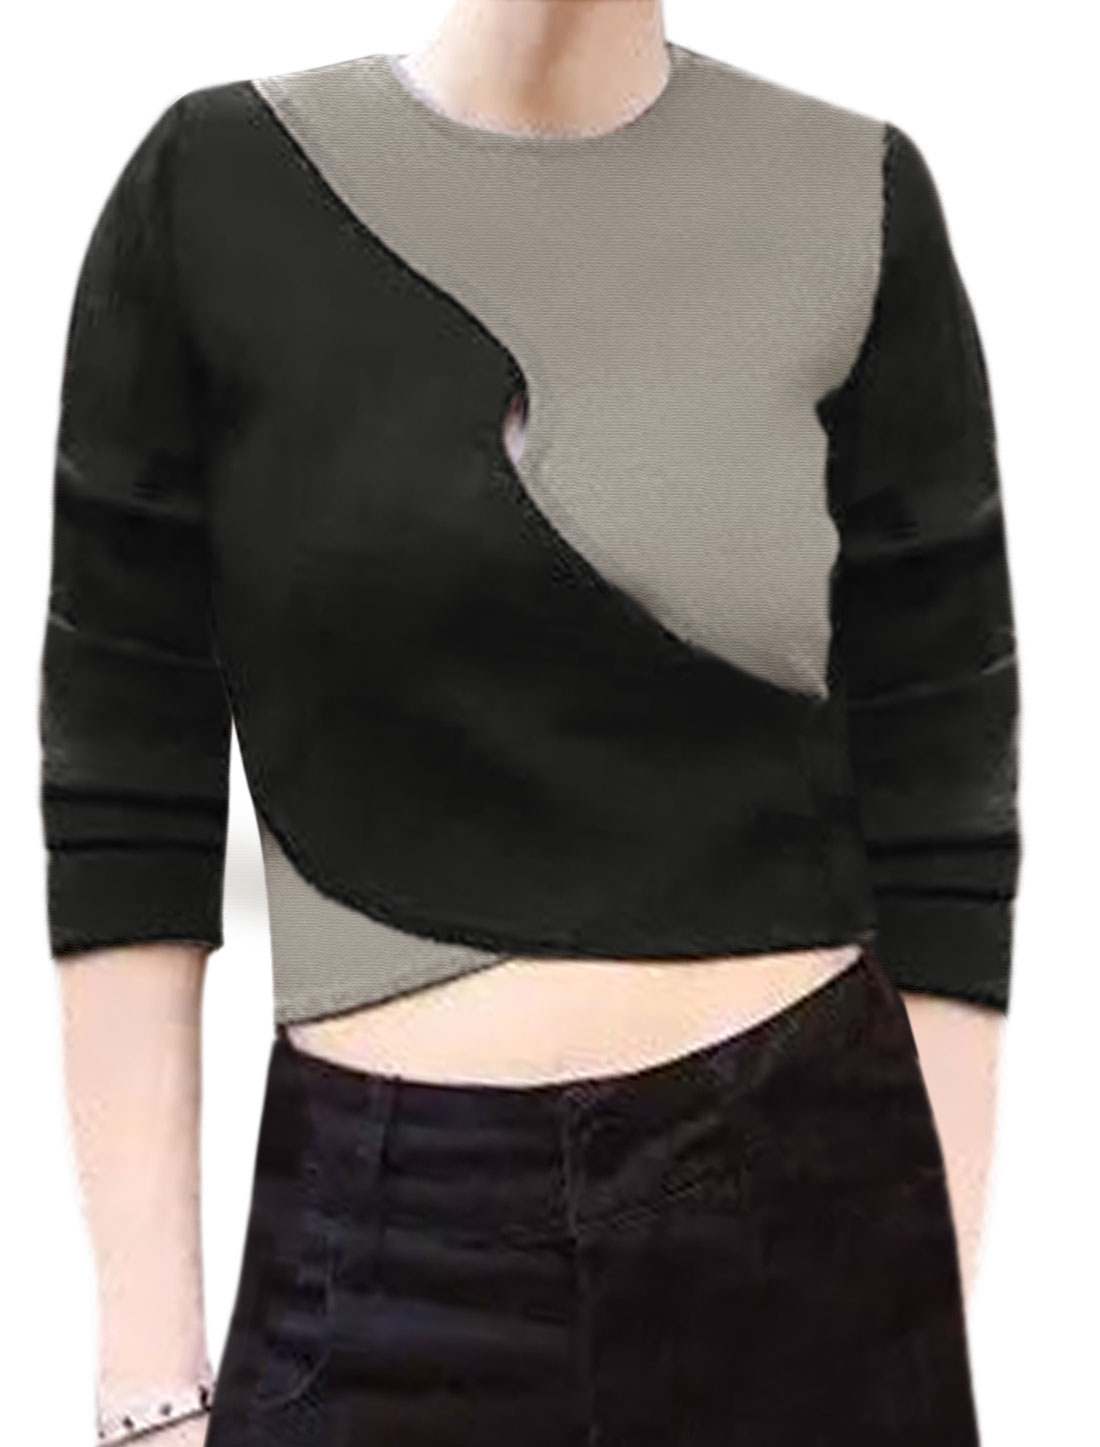 Women Long Sleeves Color Block Cut Out Front Crossover Design Crop Top Black XS